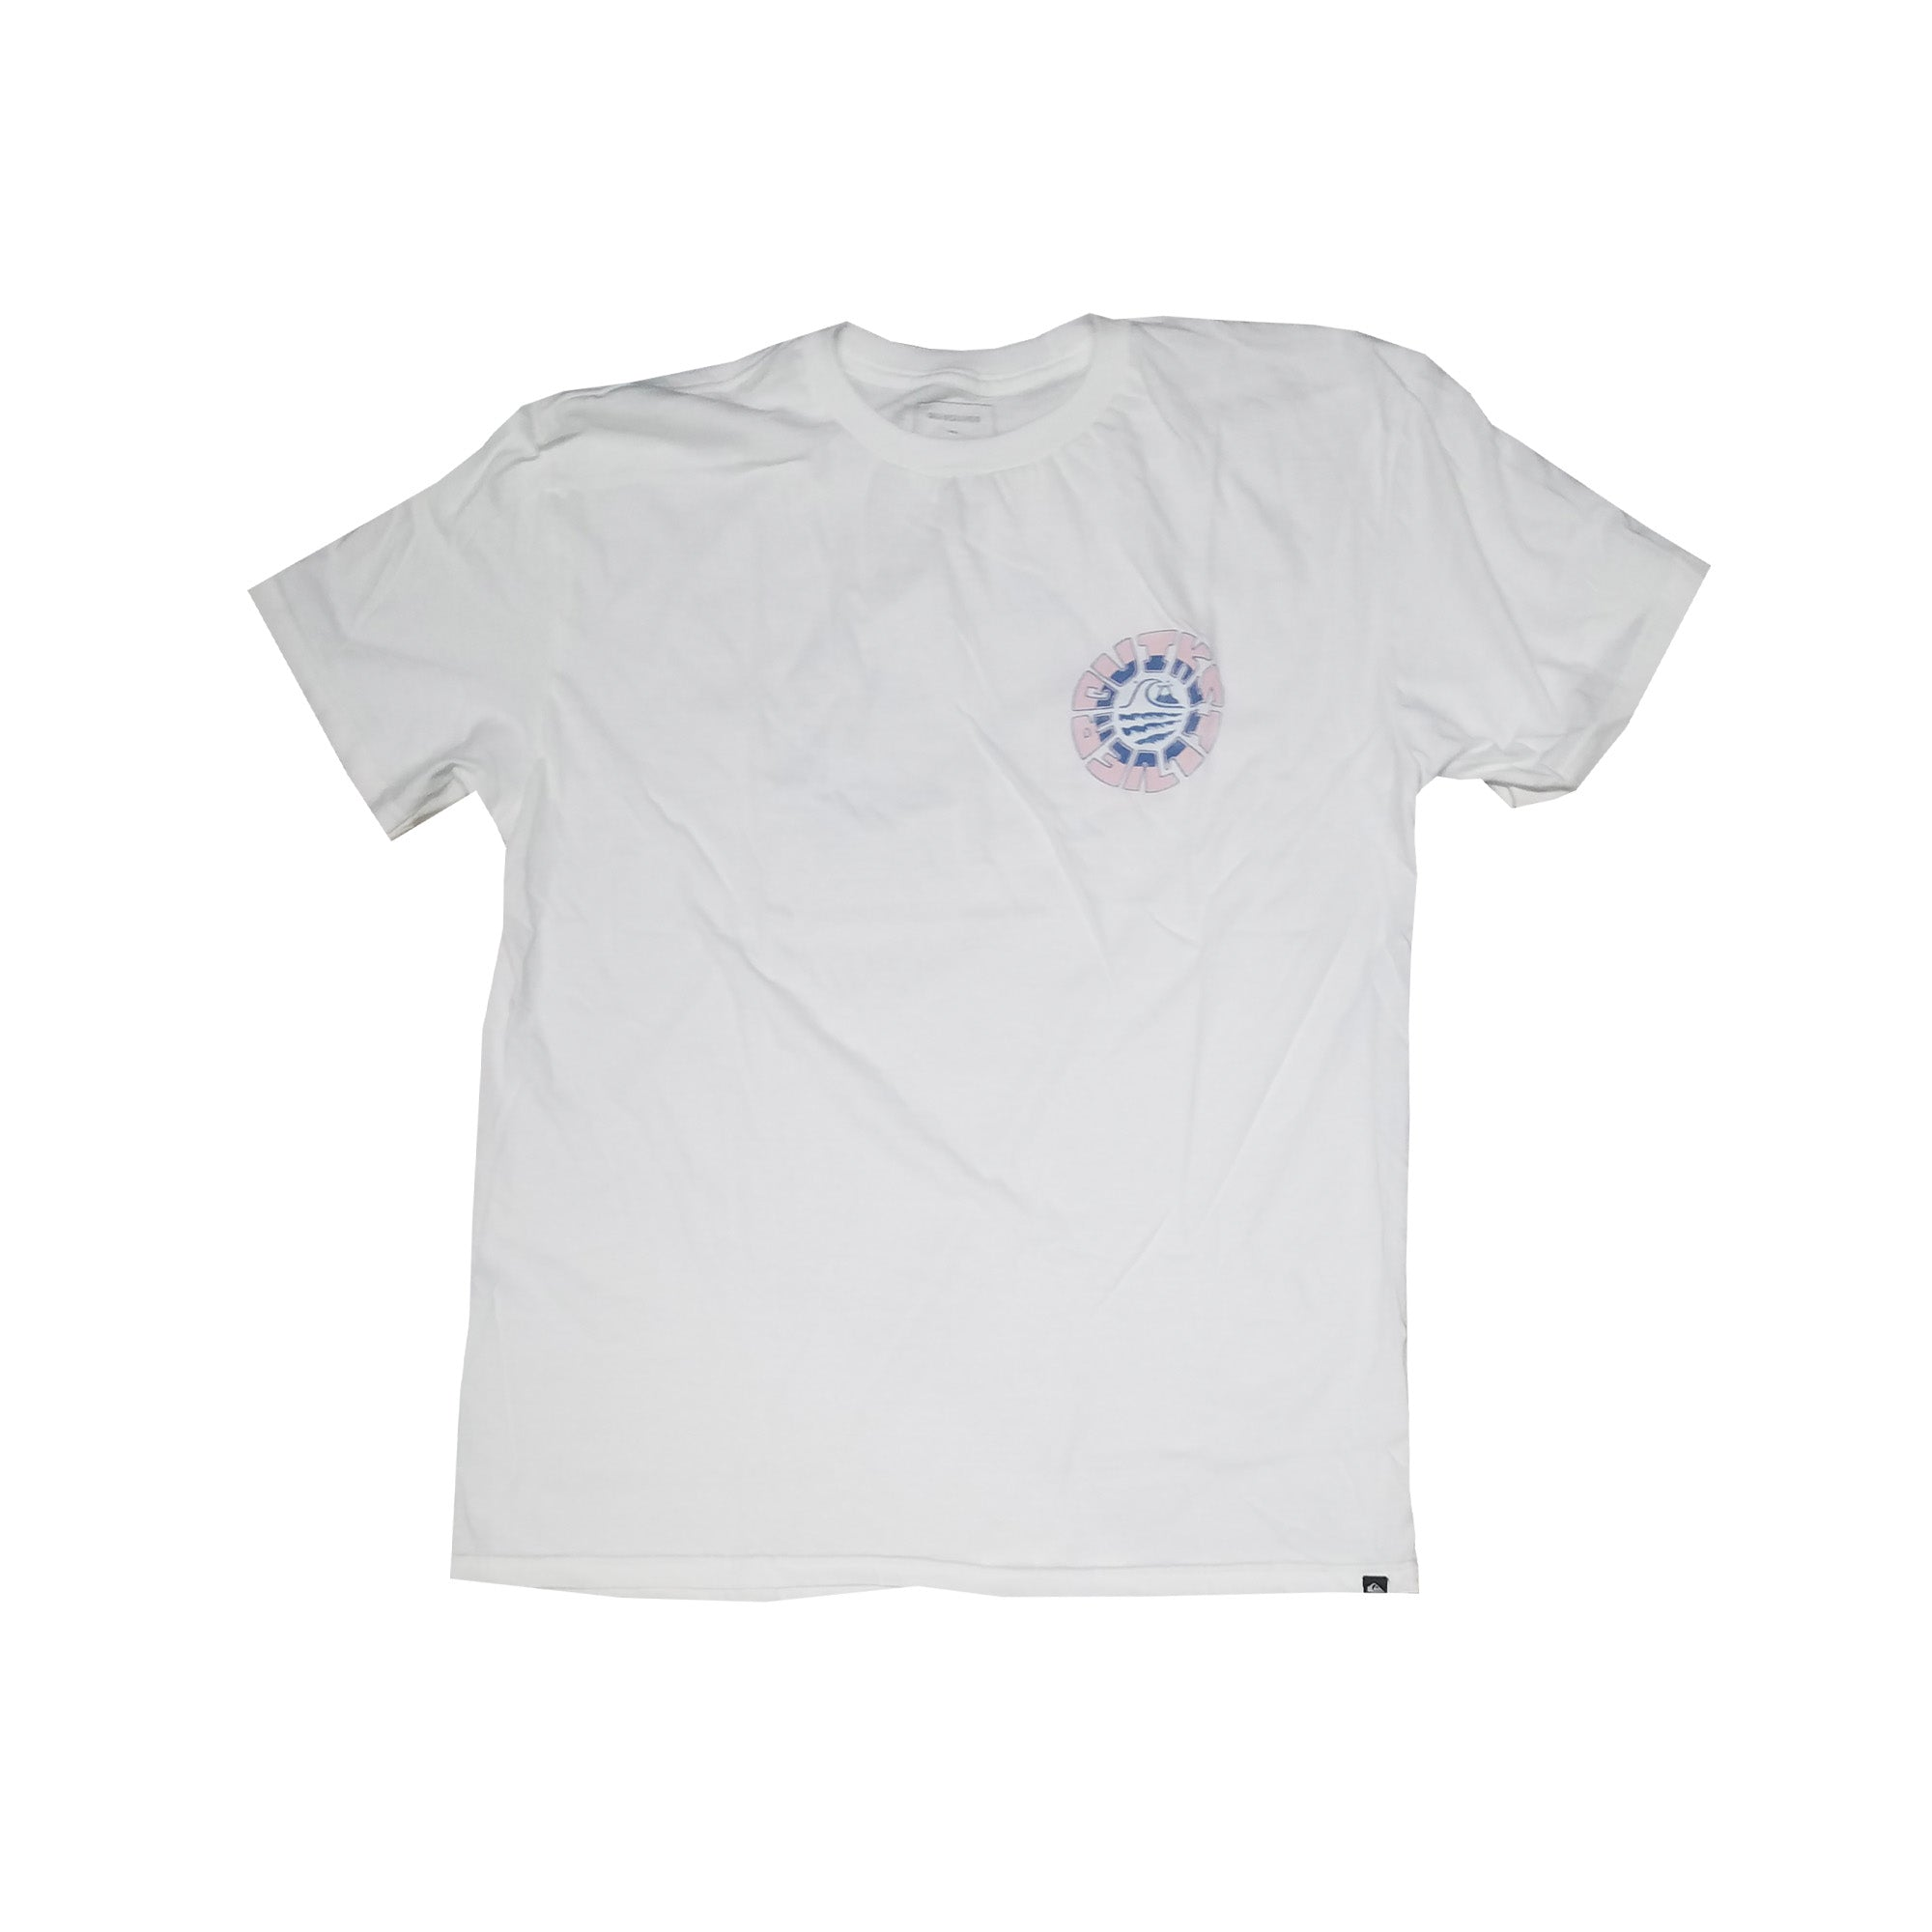 Quiksilver Last Resort Men's S/S T-Shirt